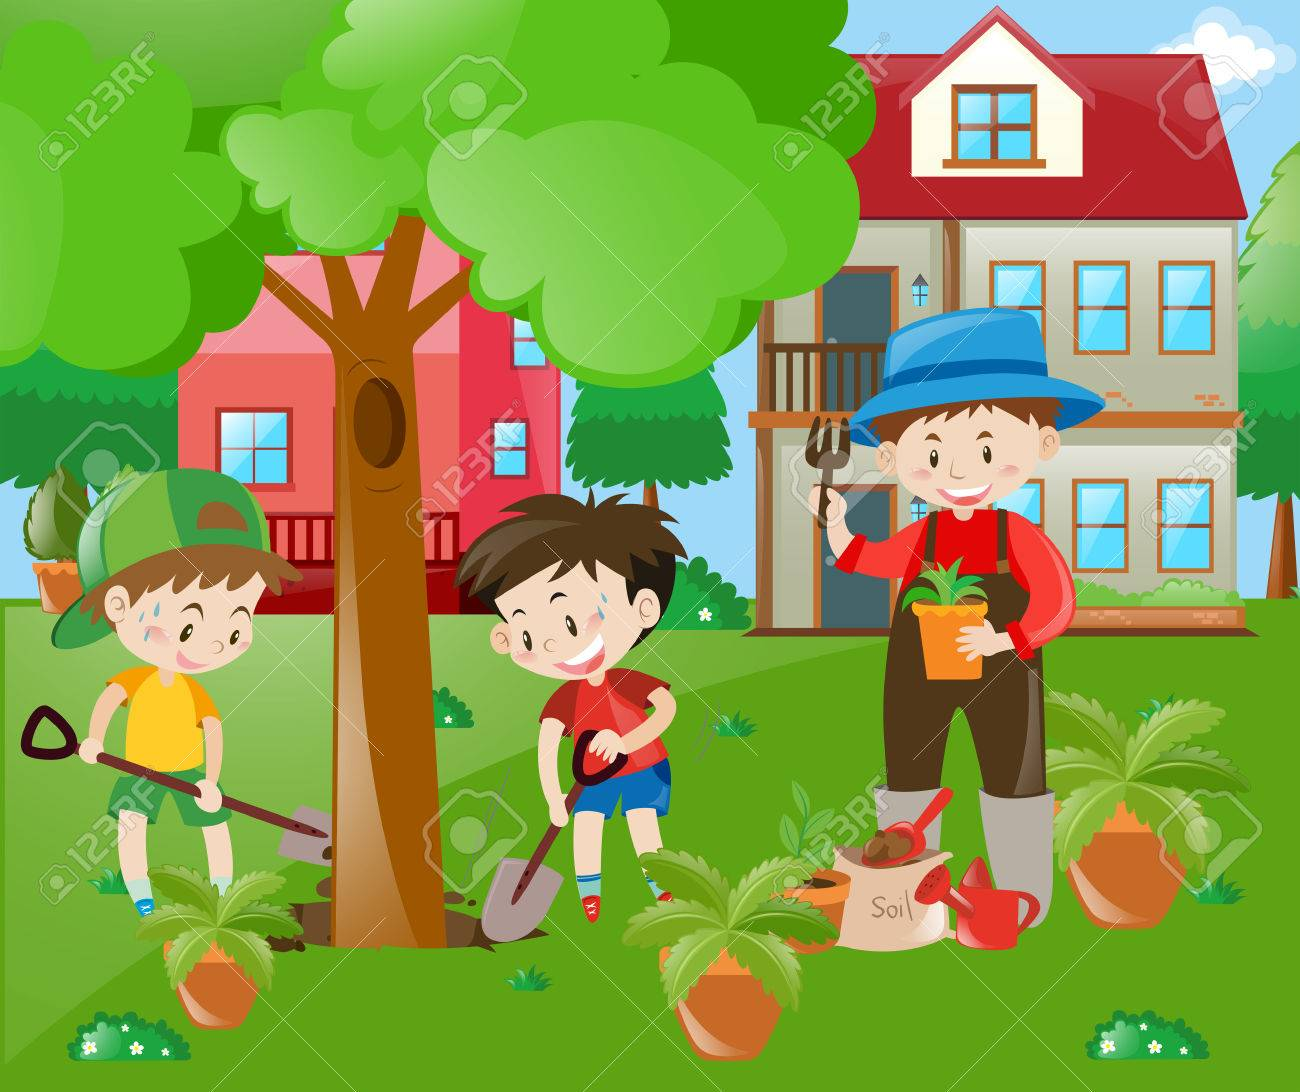 Children helping out in the garden illustration.